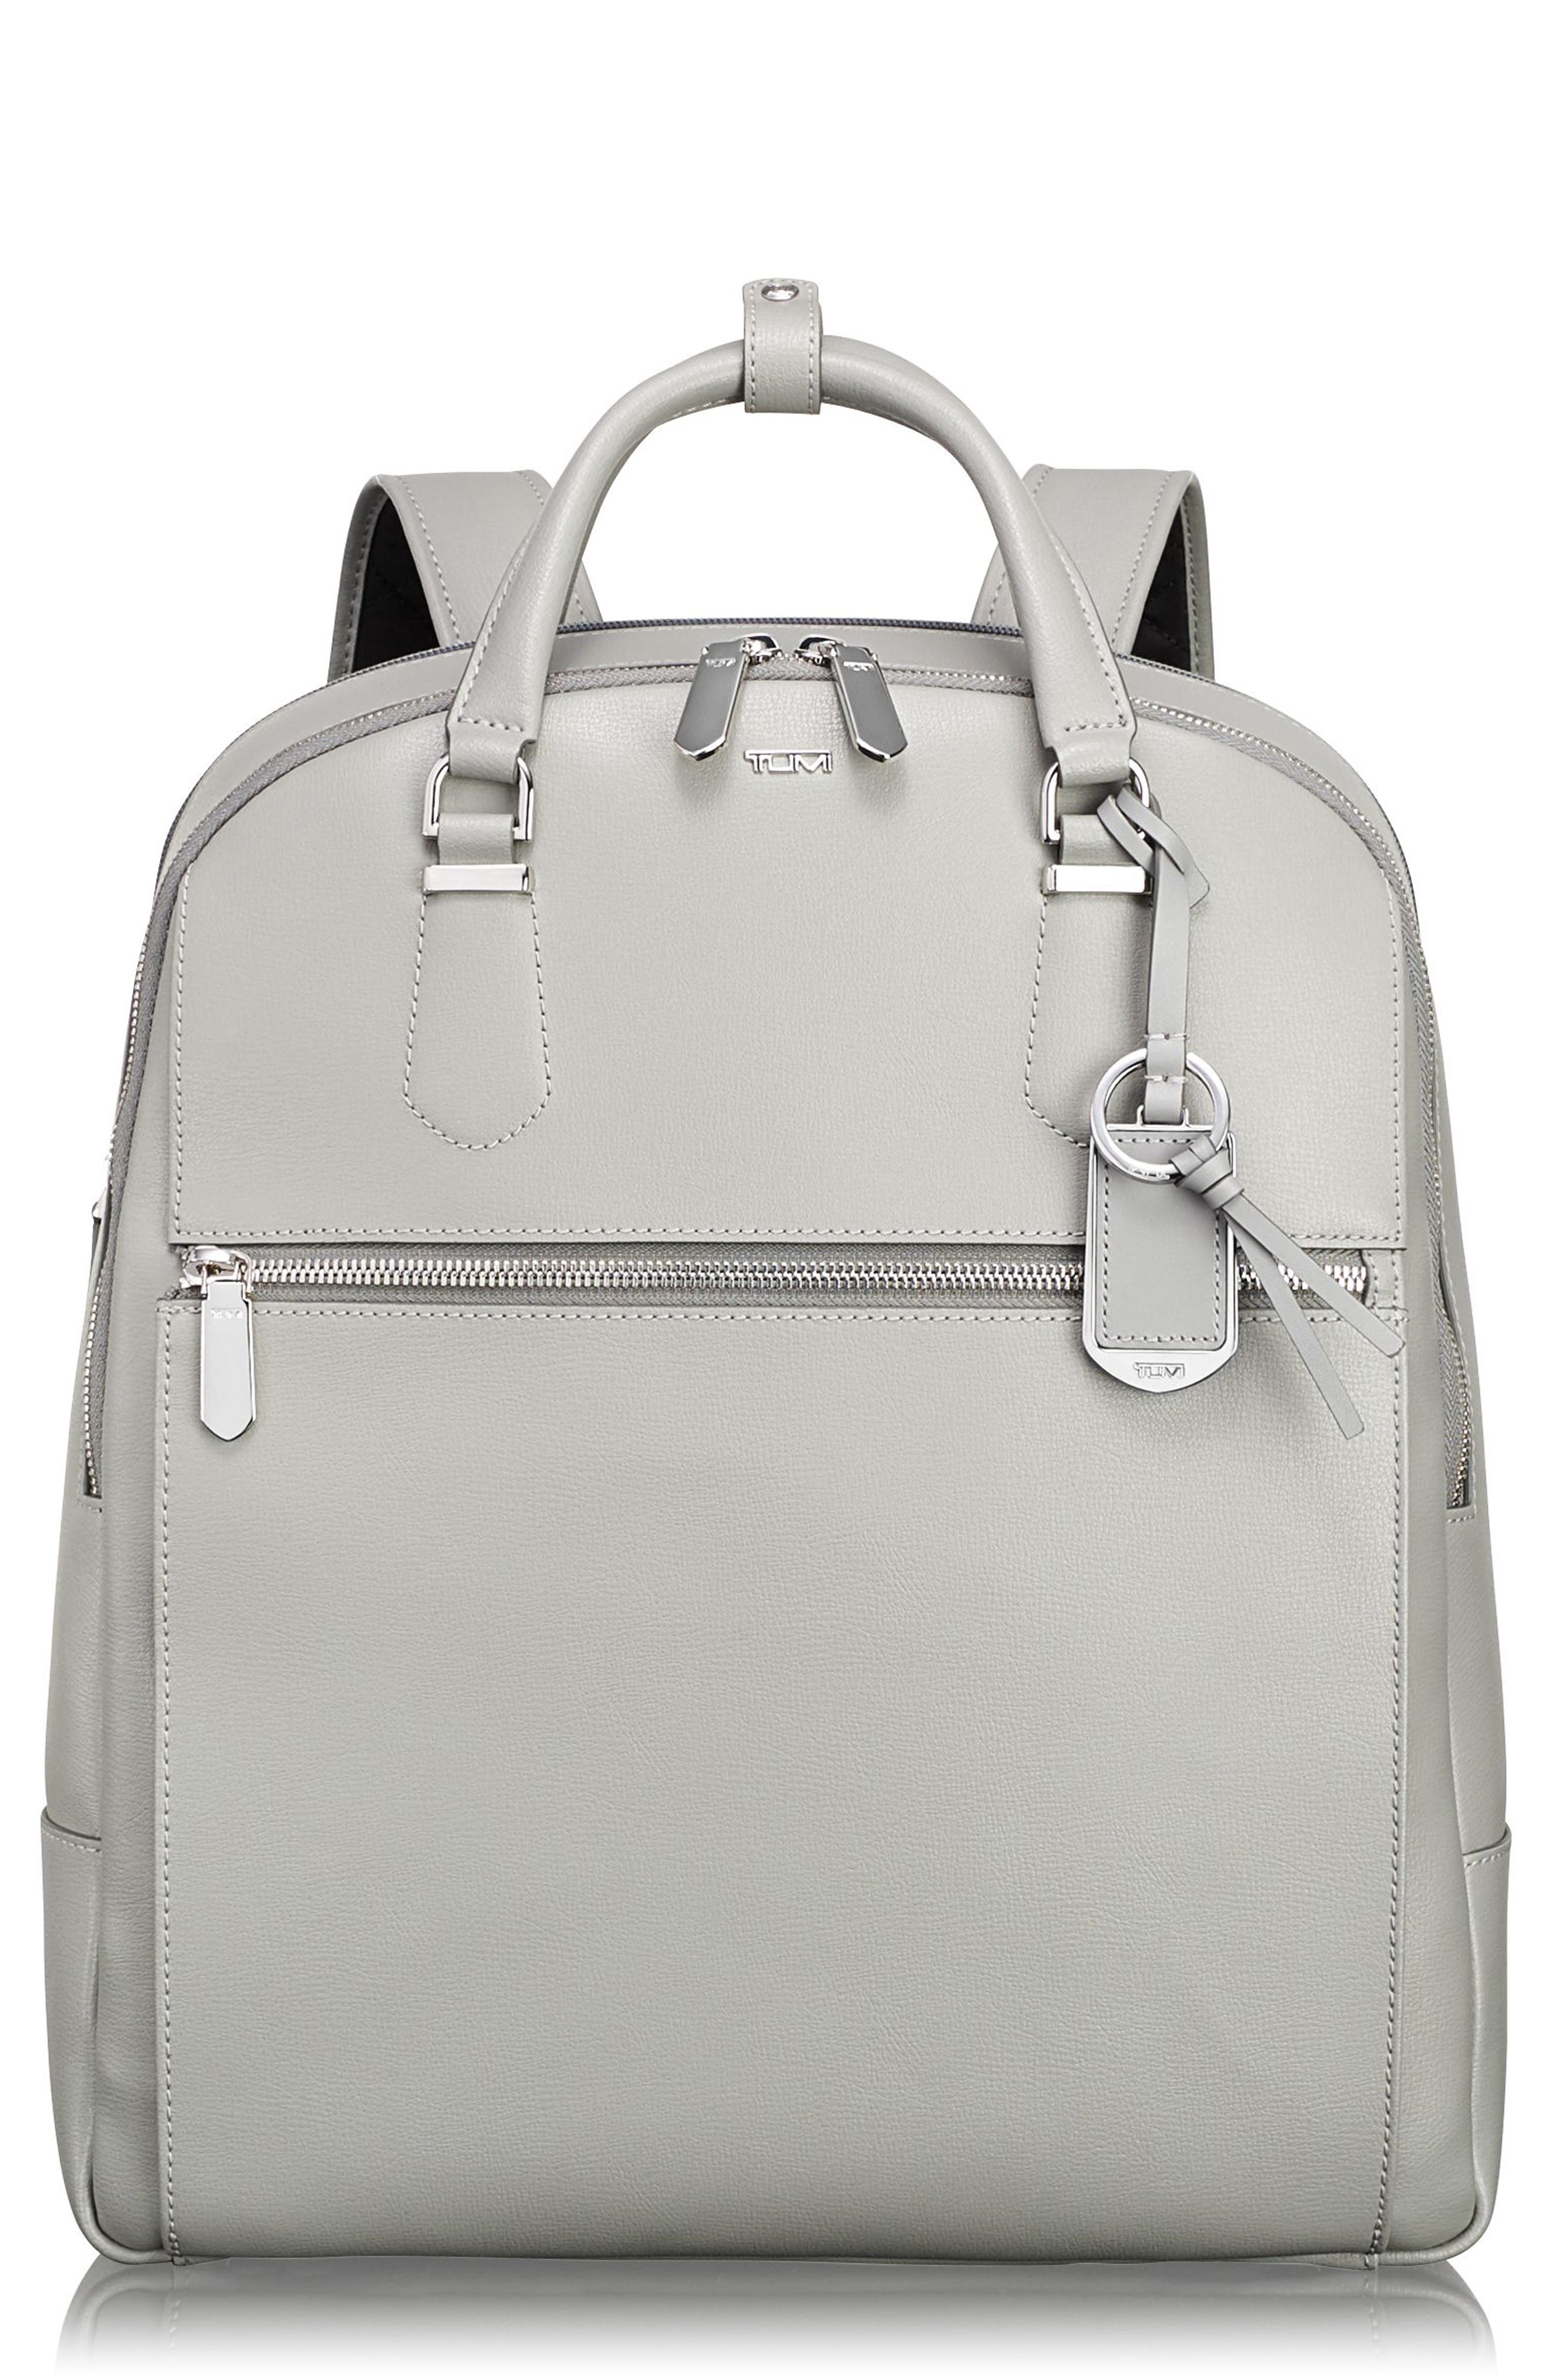 Stanton Orion Leather Backpack,                         Main,                         color, Light Grey